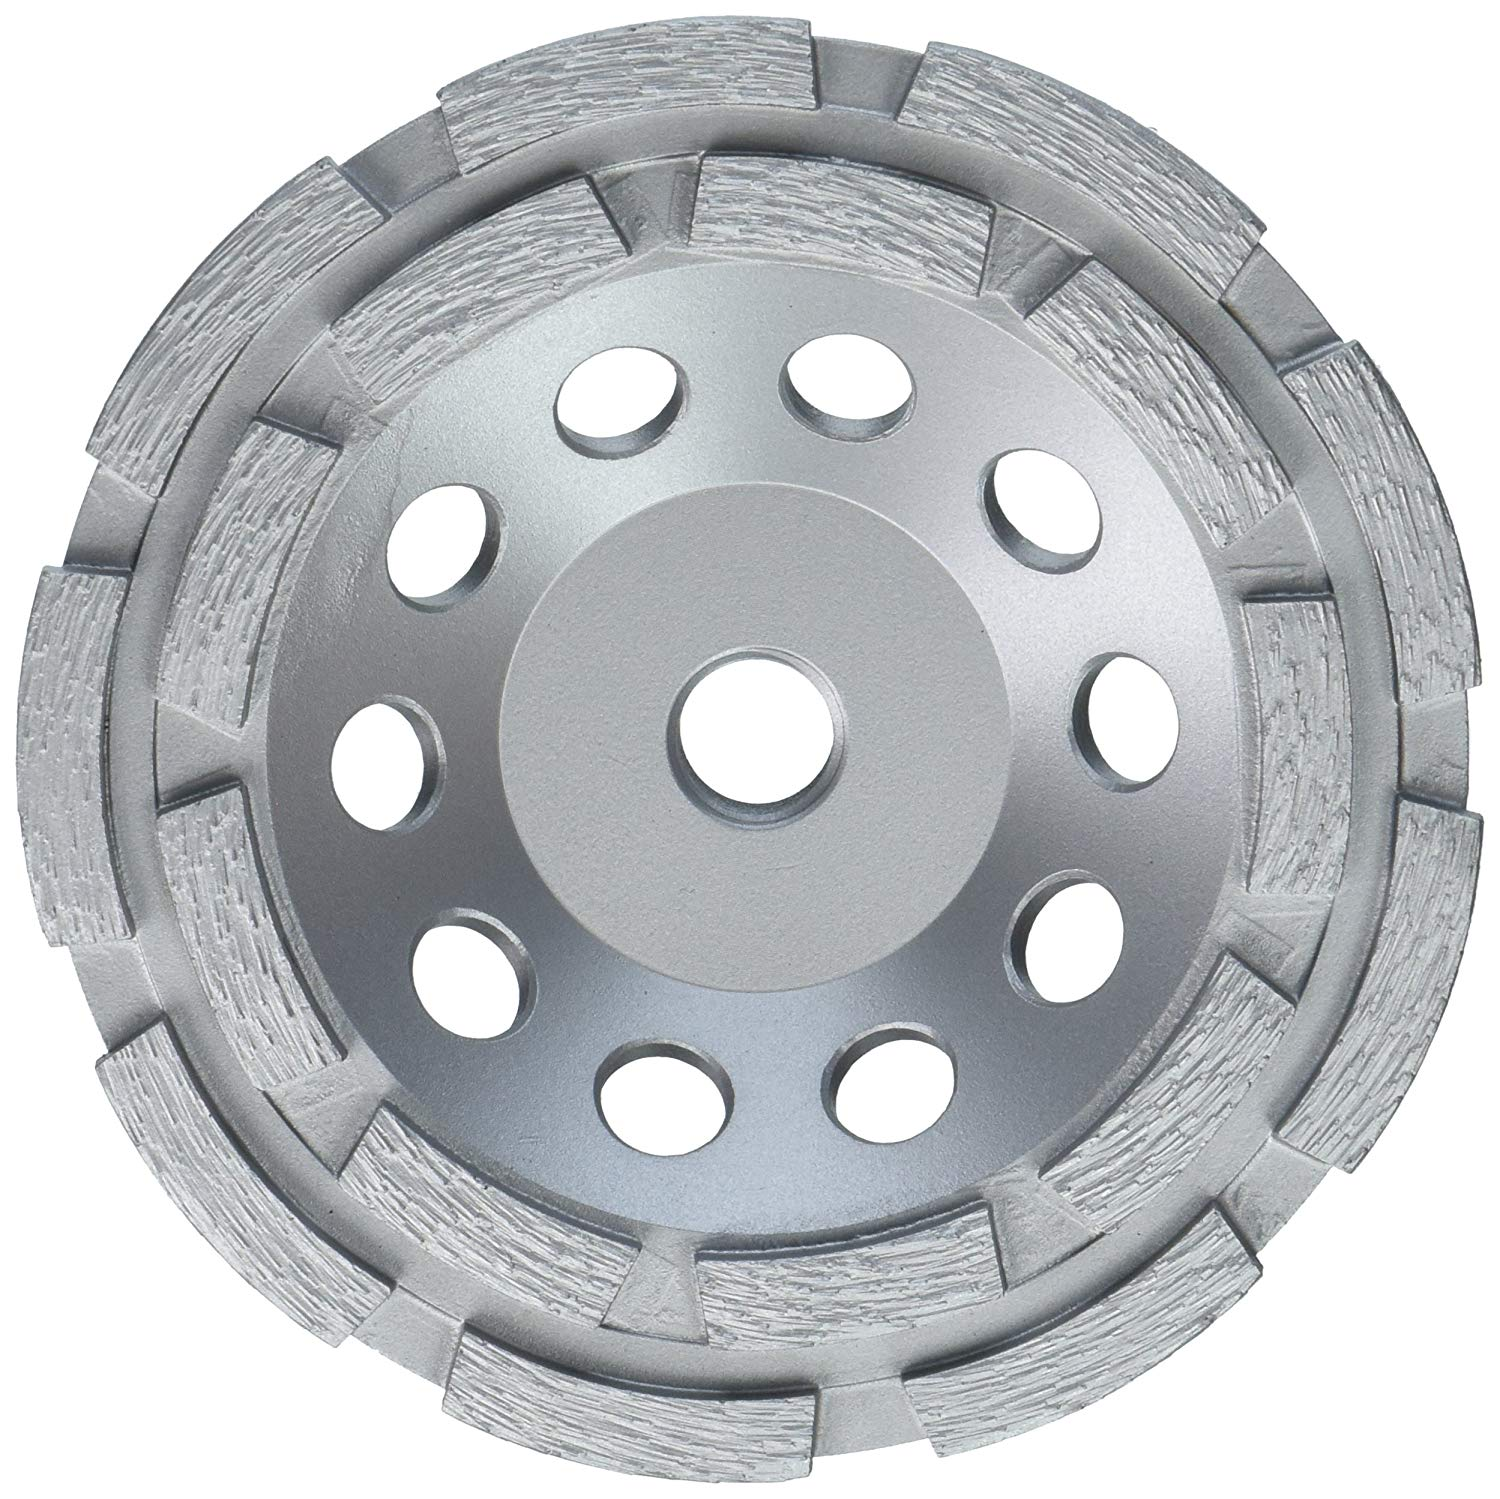 """Lackmond SPPGC5DN SPP Series Double Row Cups - 5"""" Wet/Dry Concrete Stone Coating Removal Tool with Double Row Configuration & 5/8""""-11 Thread Arbor"""